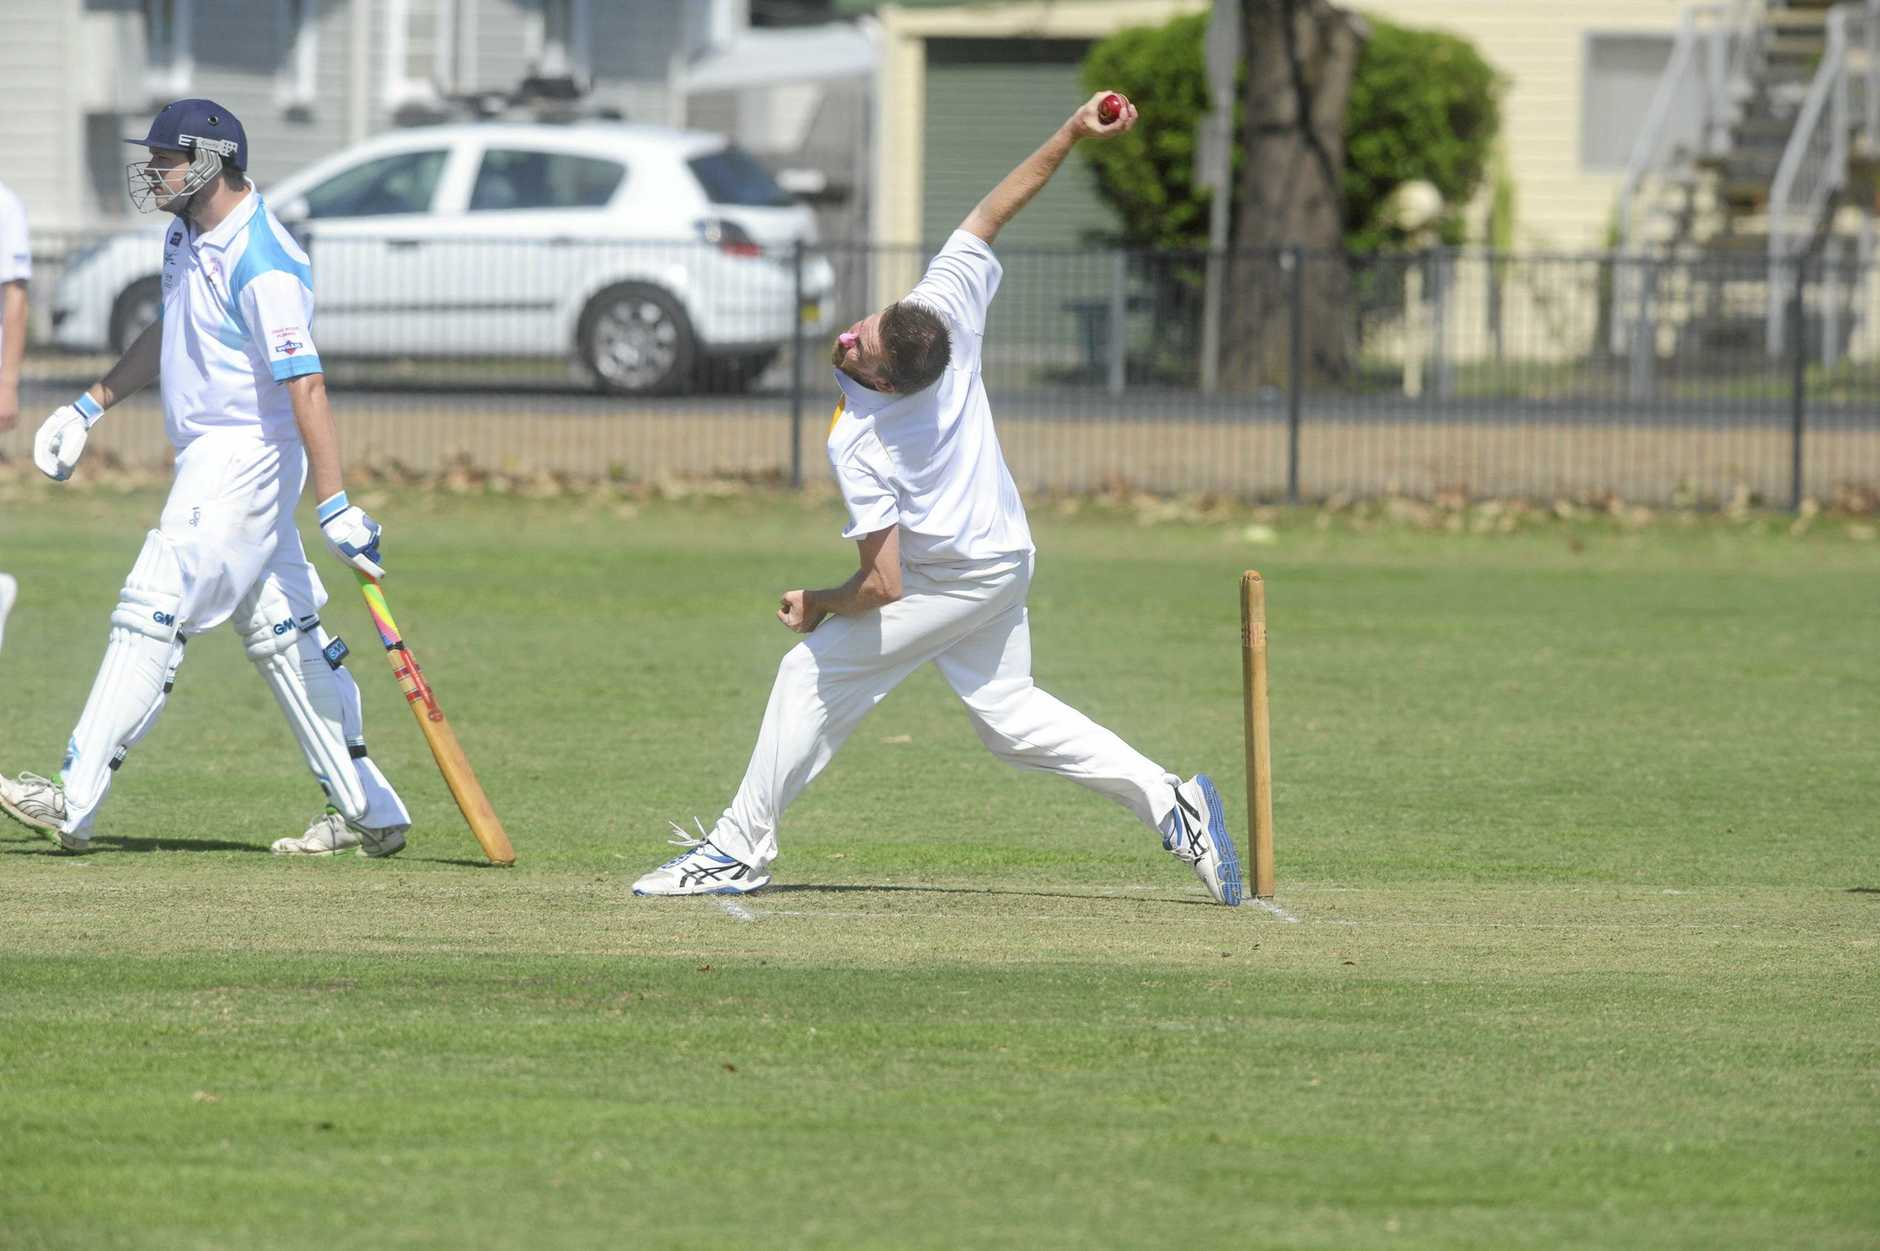 DOUBLE BLOW: Westlawn captain and lead seamer Nathan Blanch will also not be able to bowl after he tore a muscle in his hamstring last weekend.